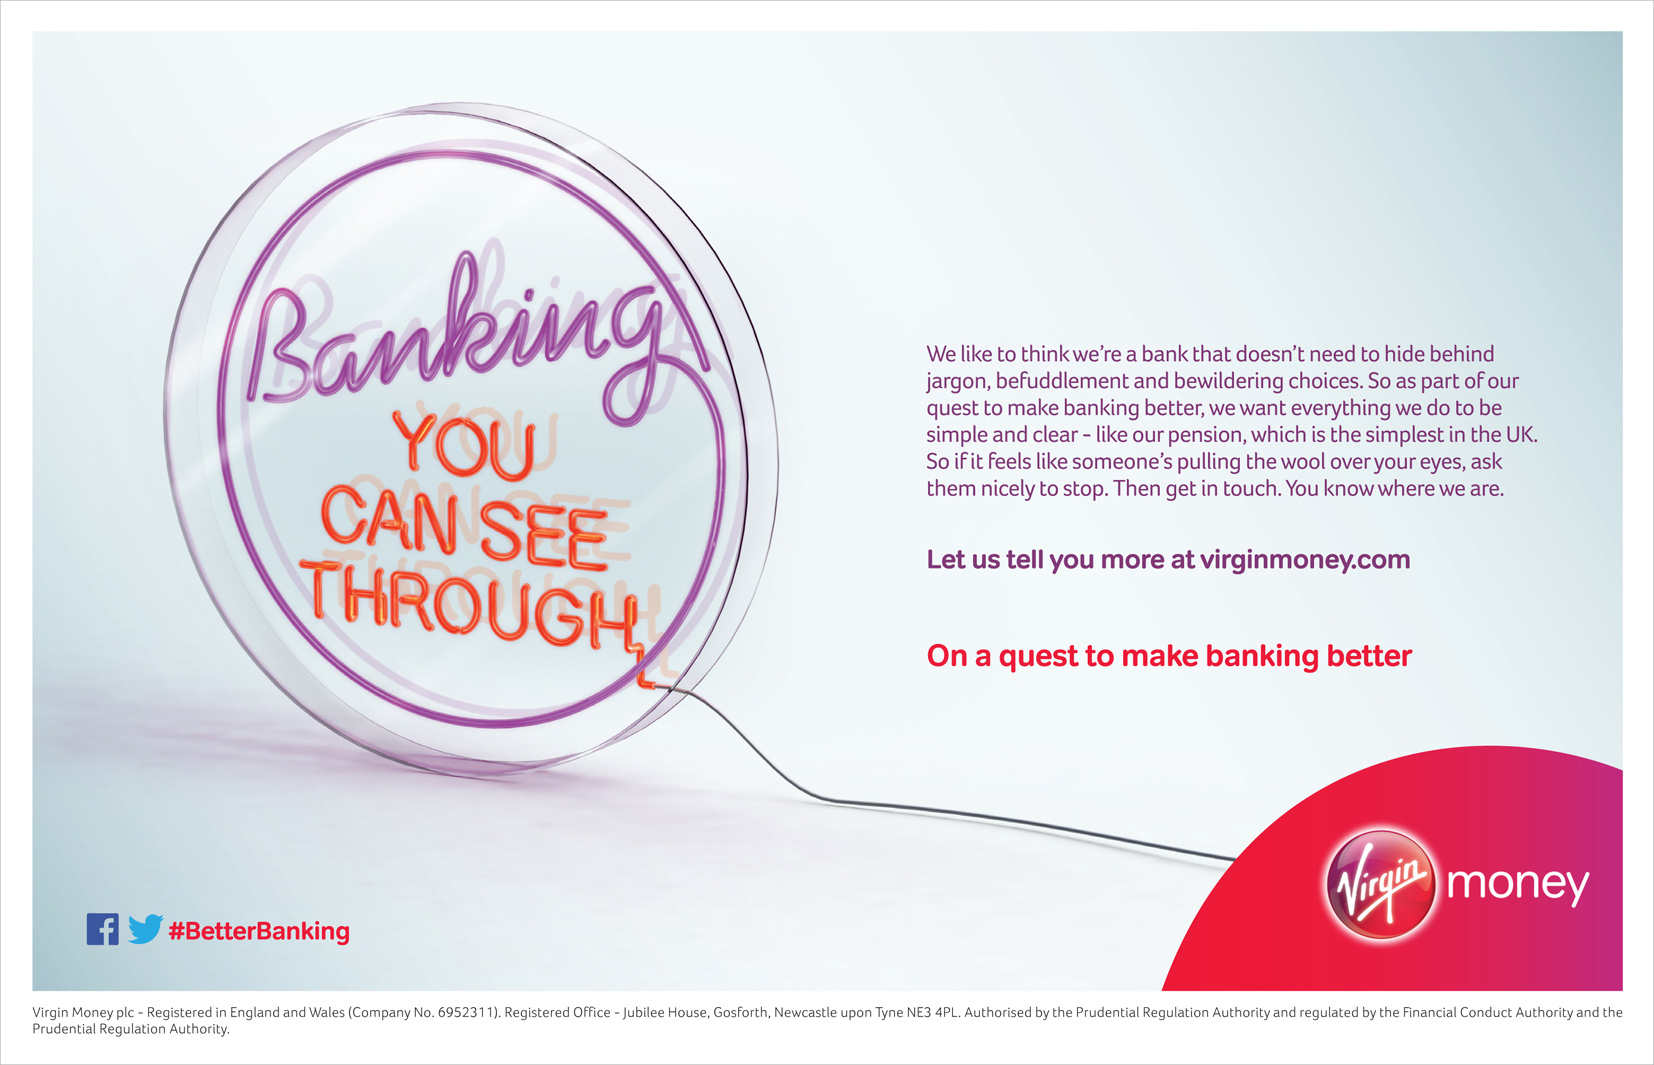 Banking You Can See Through / Virgin Money